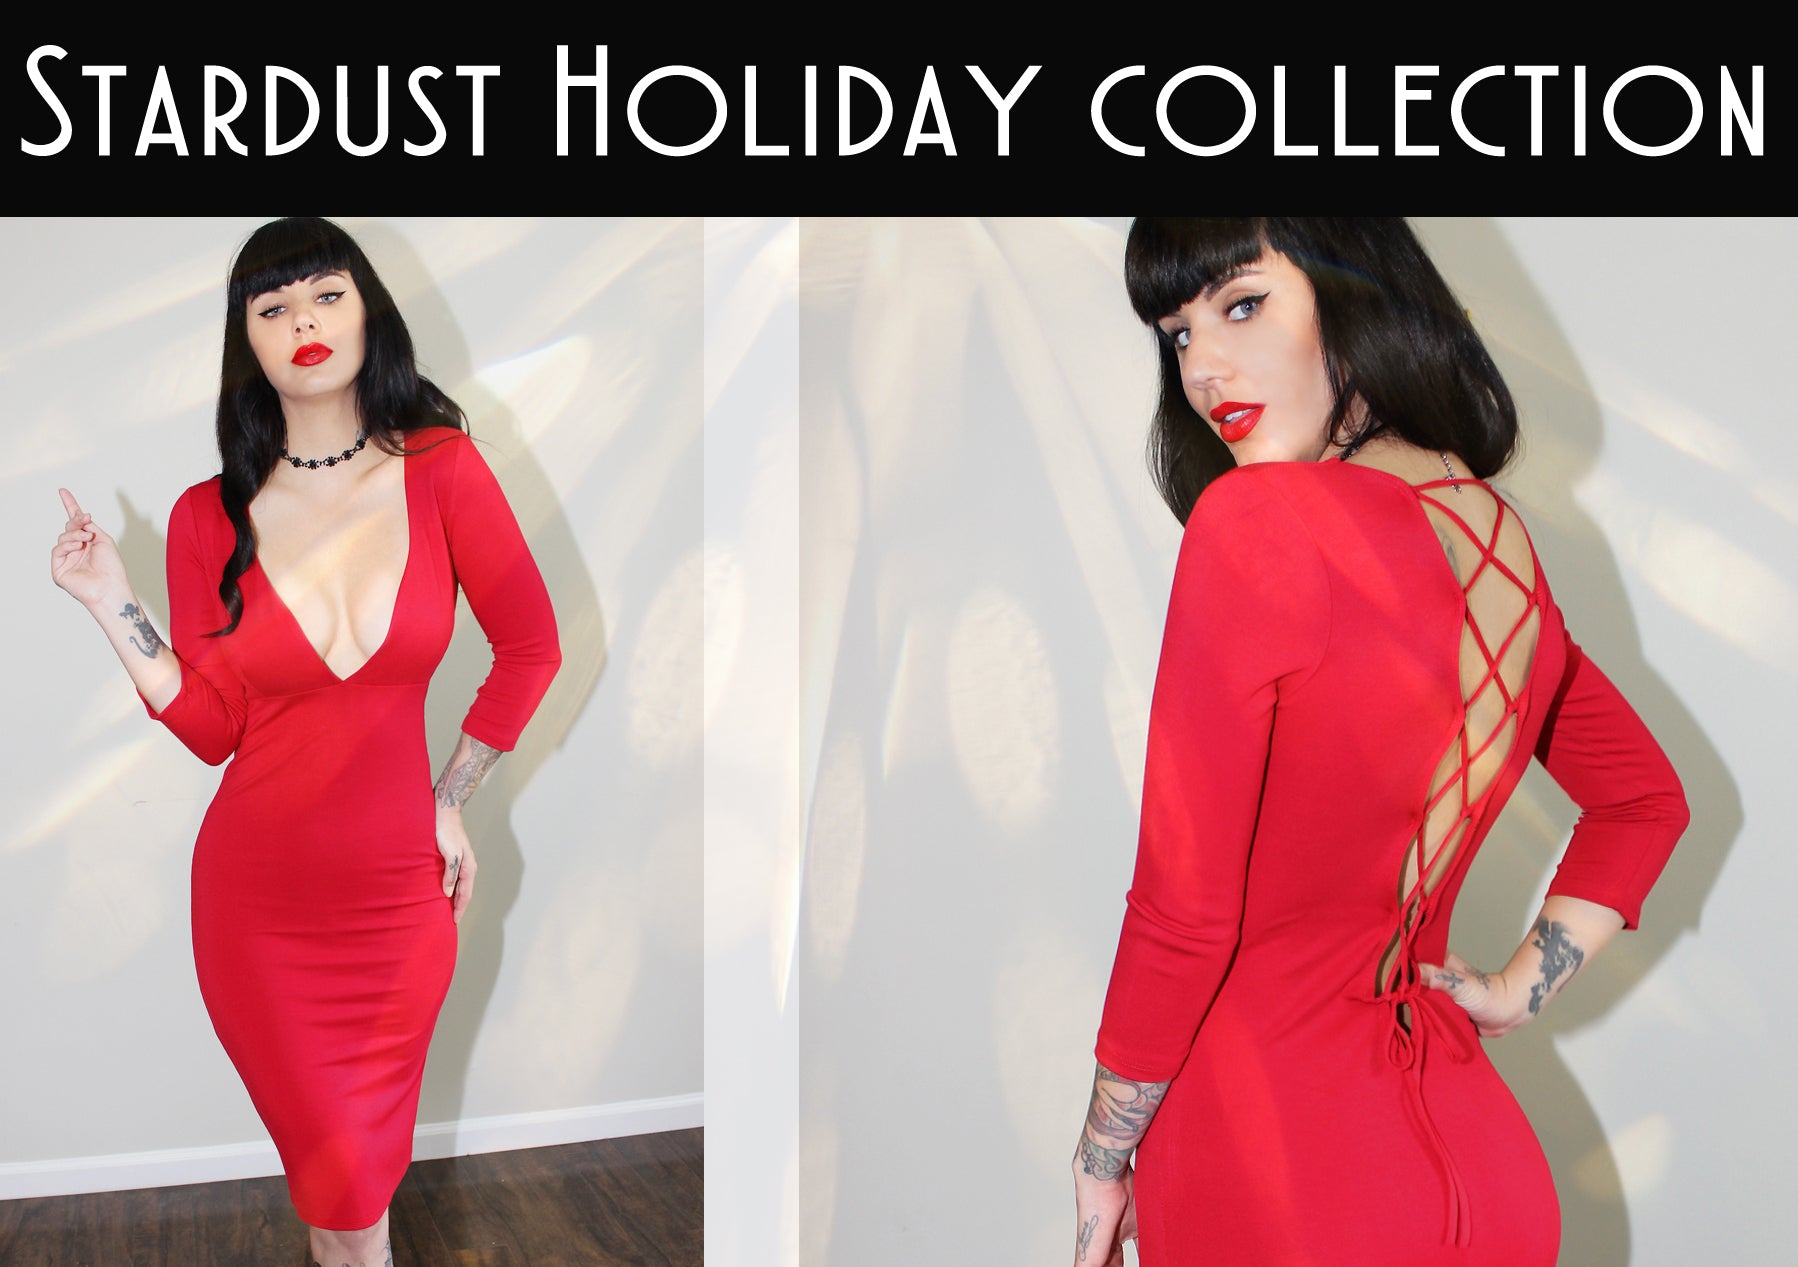 Stardust Holiday Collection